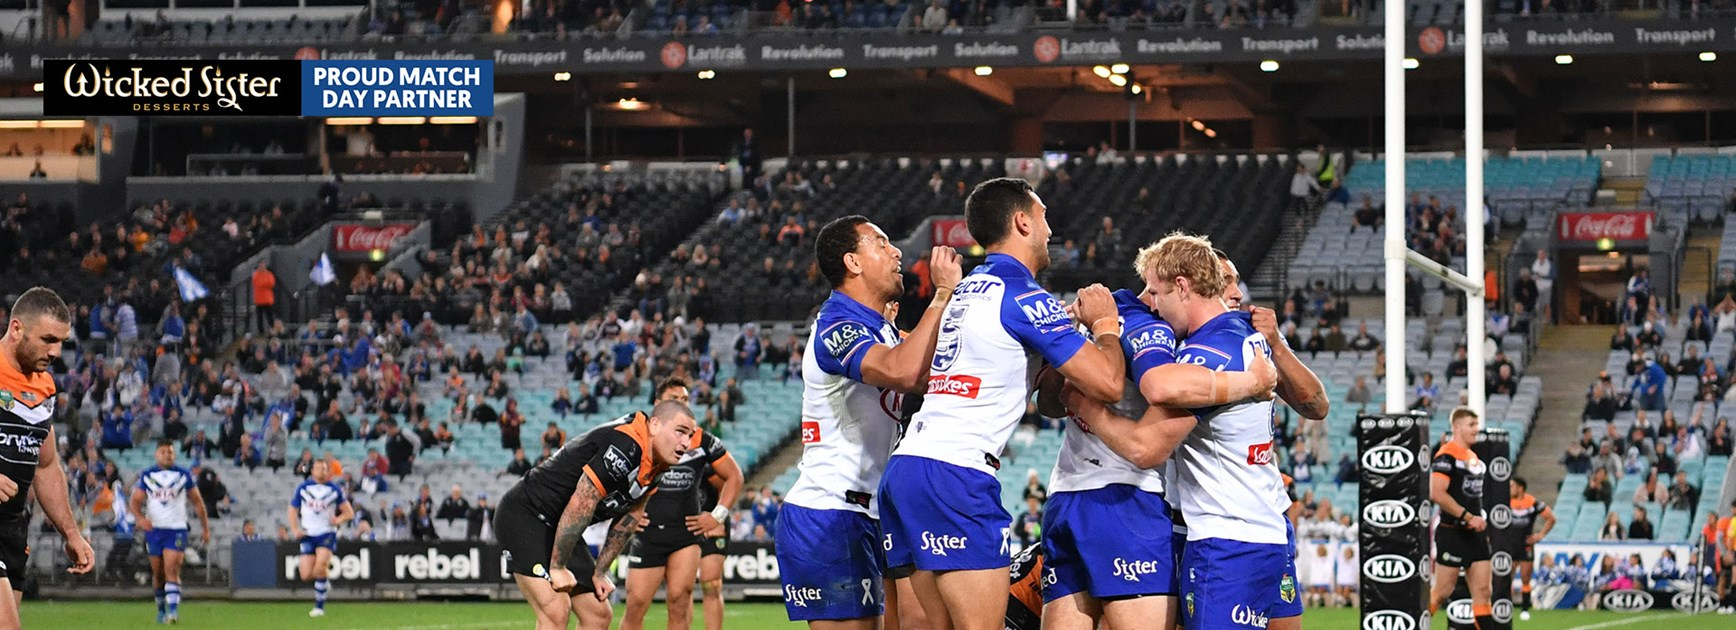 Dogs defence stands tall in victory over Tigers